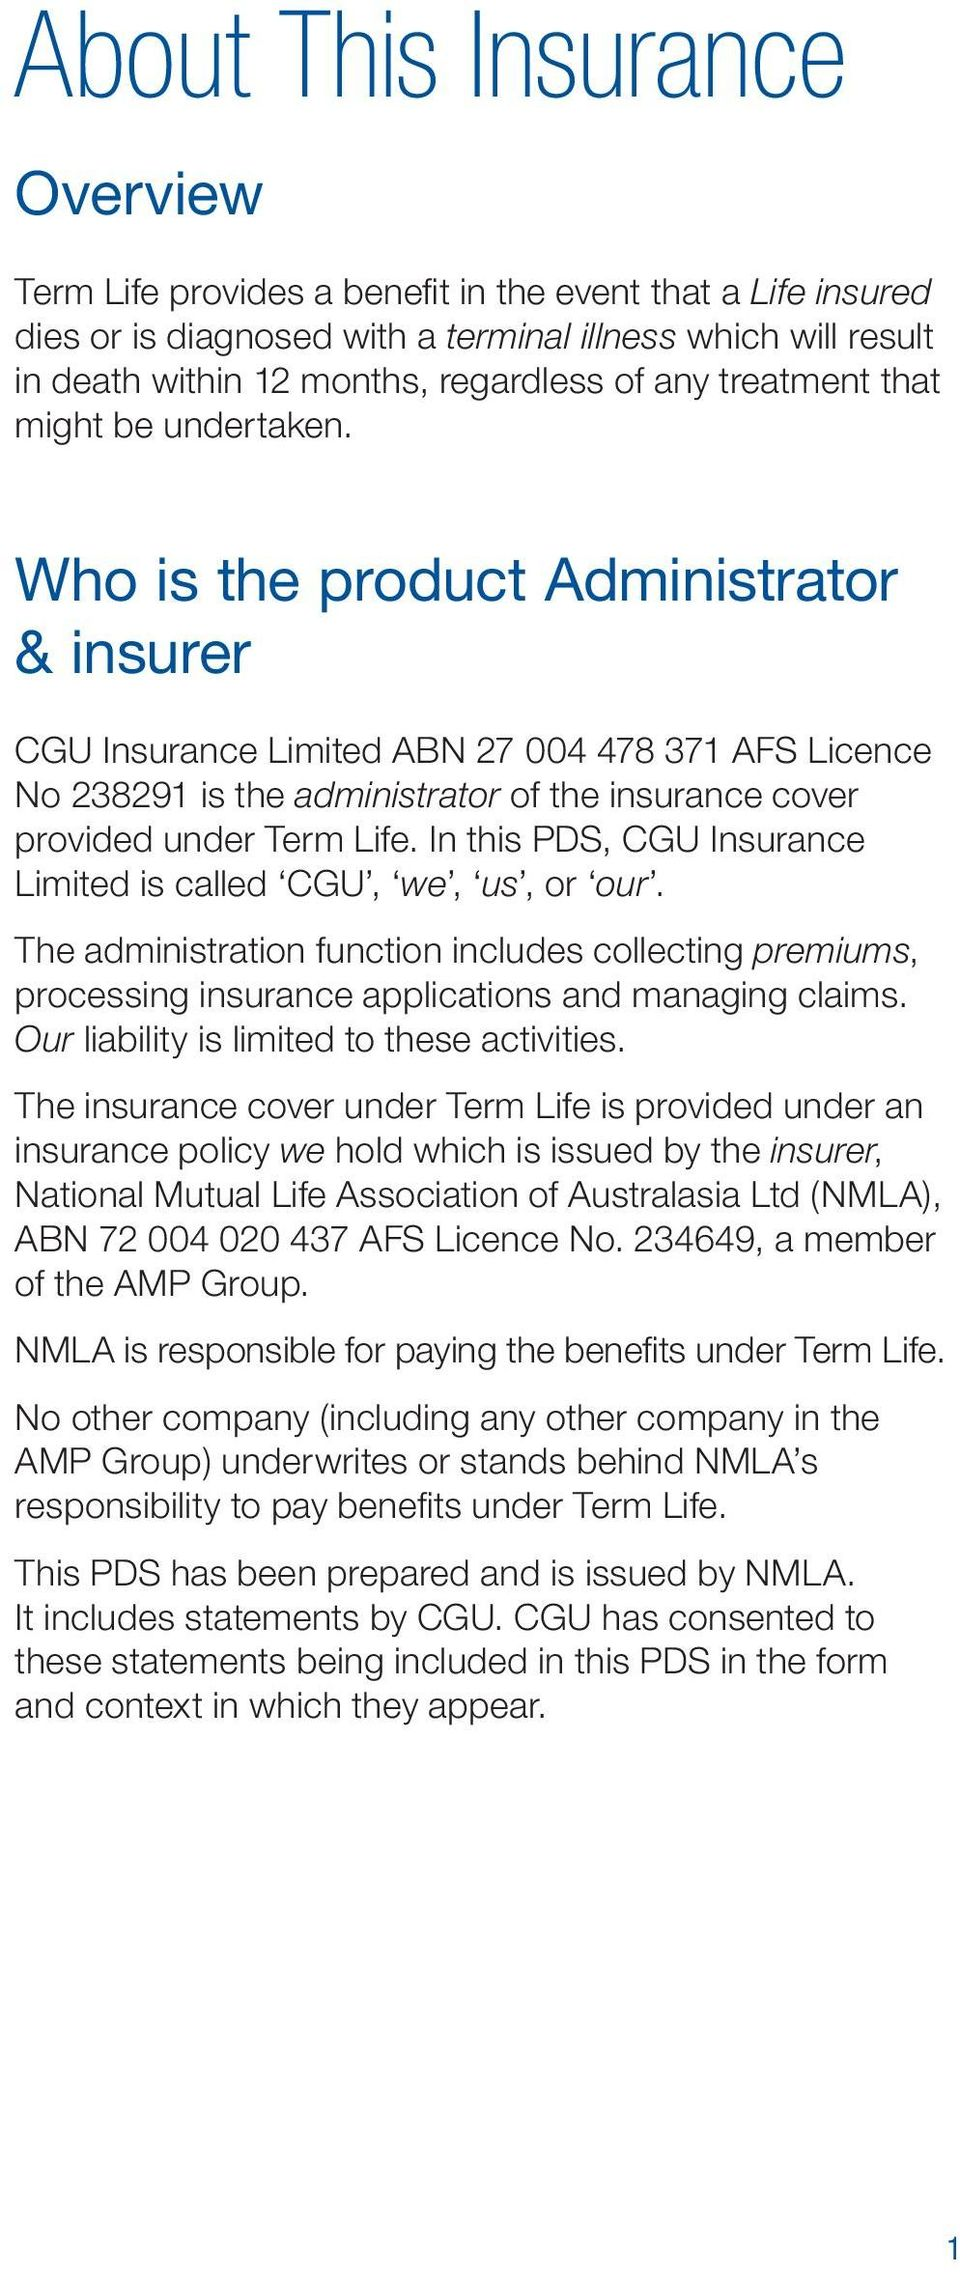 Who is the product Administrator & insurer CGU Insurance Limited ABN 27 004 478 371 AFS Licence No 238291 is the administrator of the insurance cover provided under Term Life.